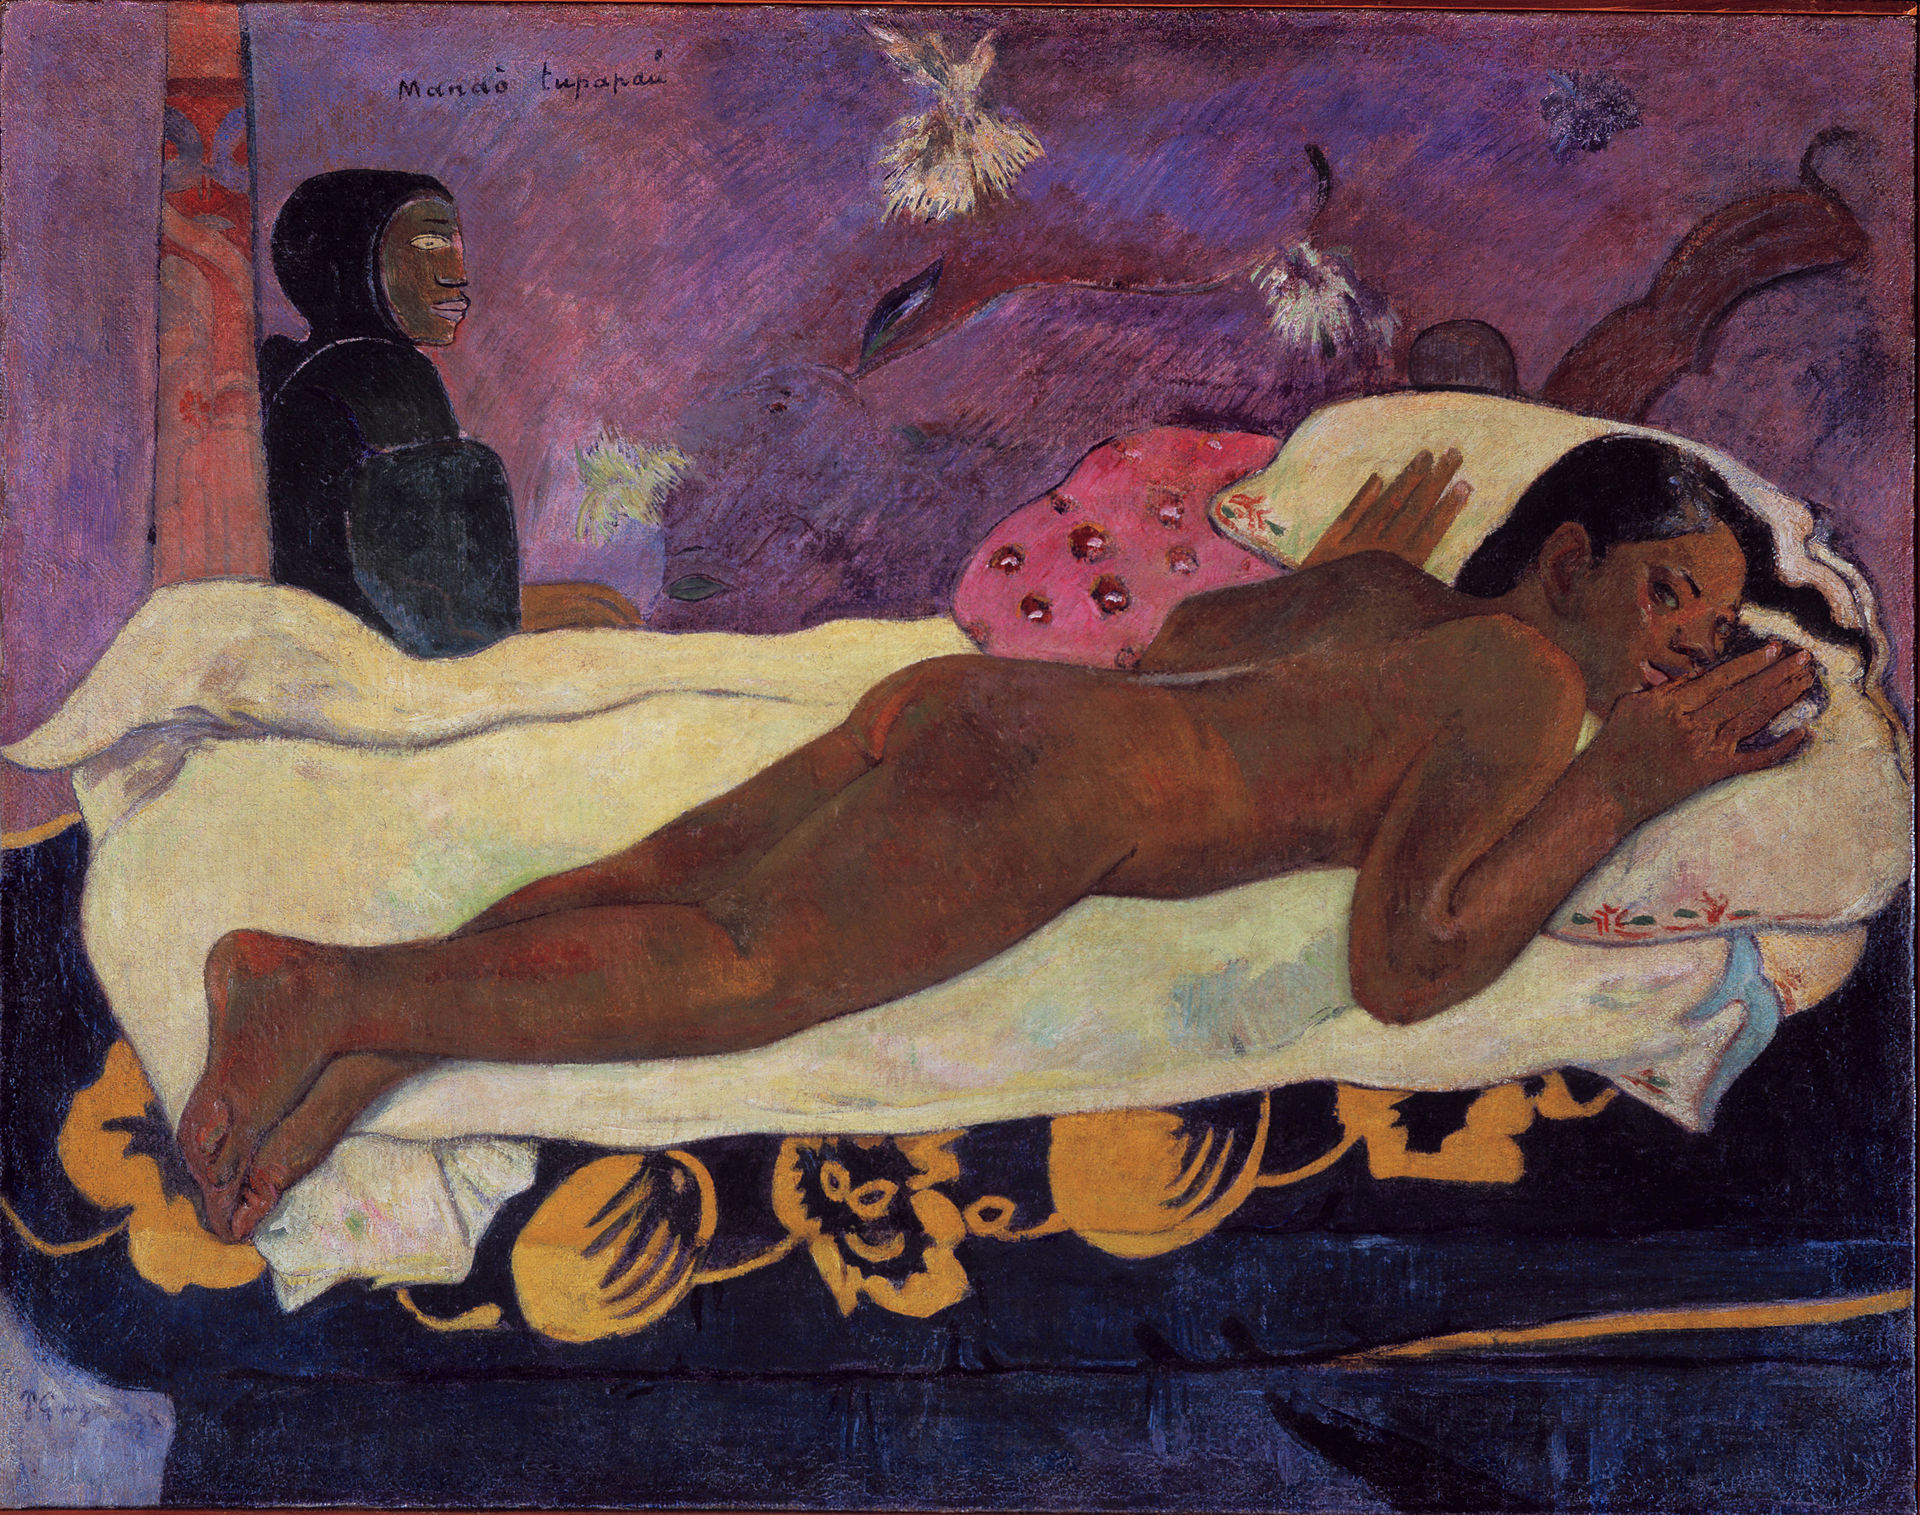 Paul Gauguin, Manao Tupapau  (The Spirit of the Dead Keep Watching), 1892